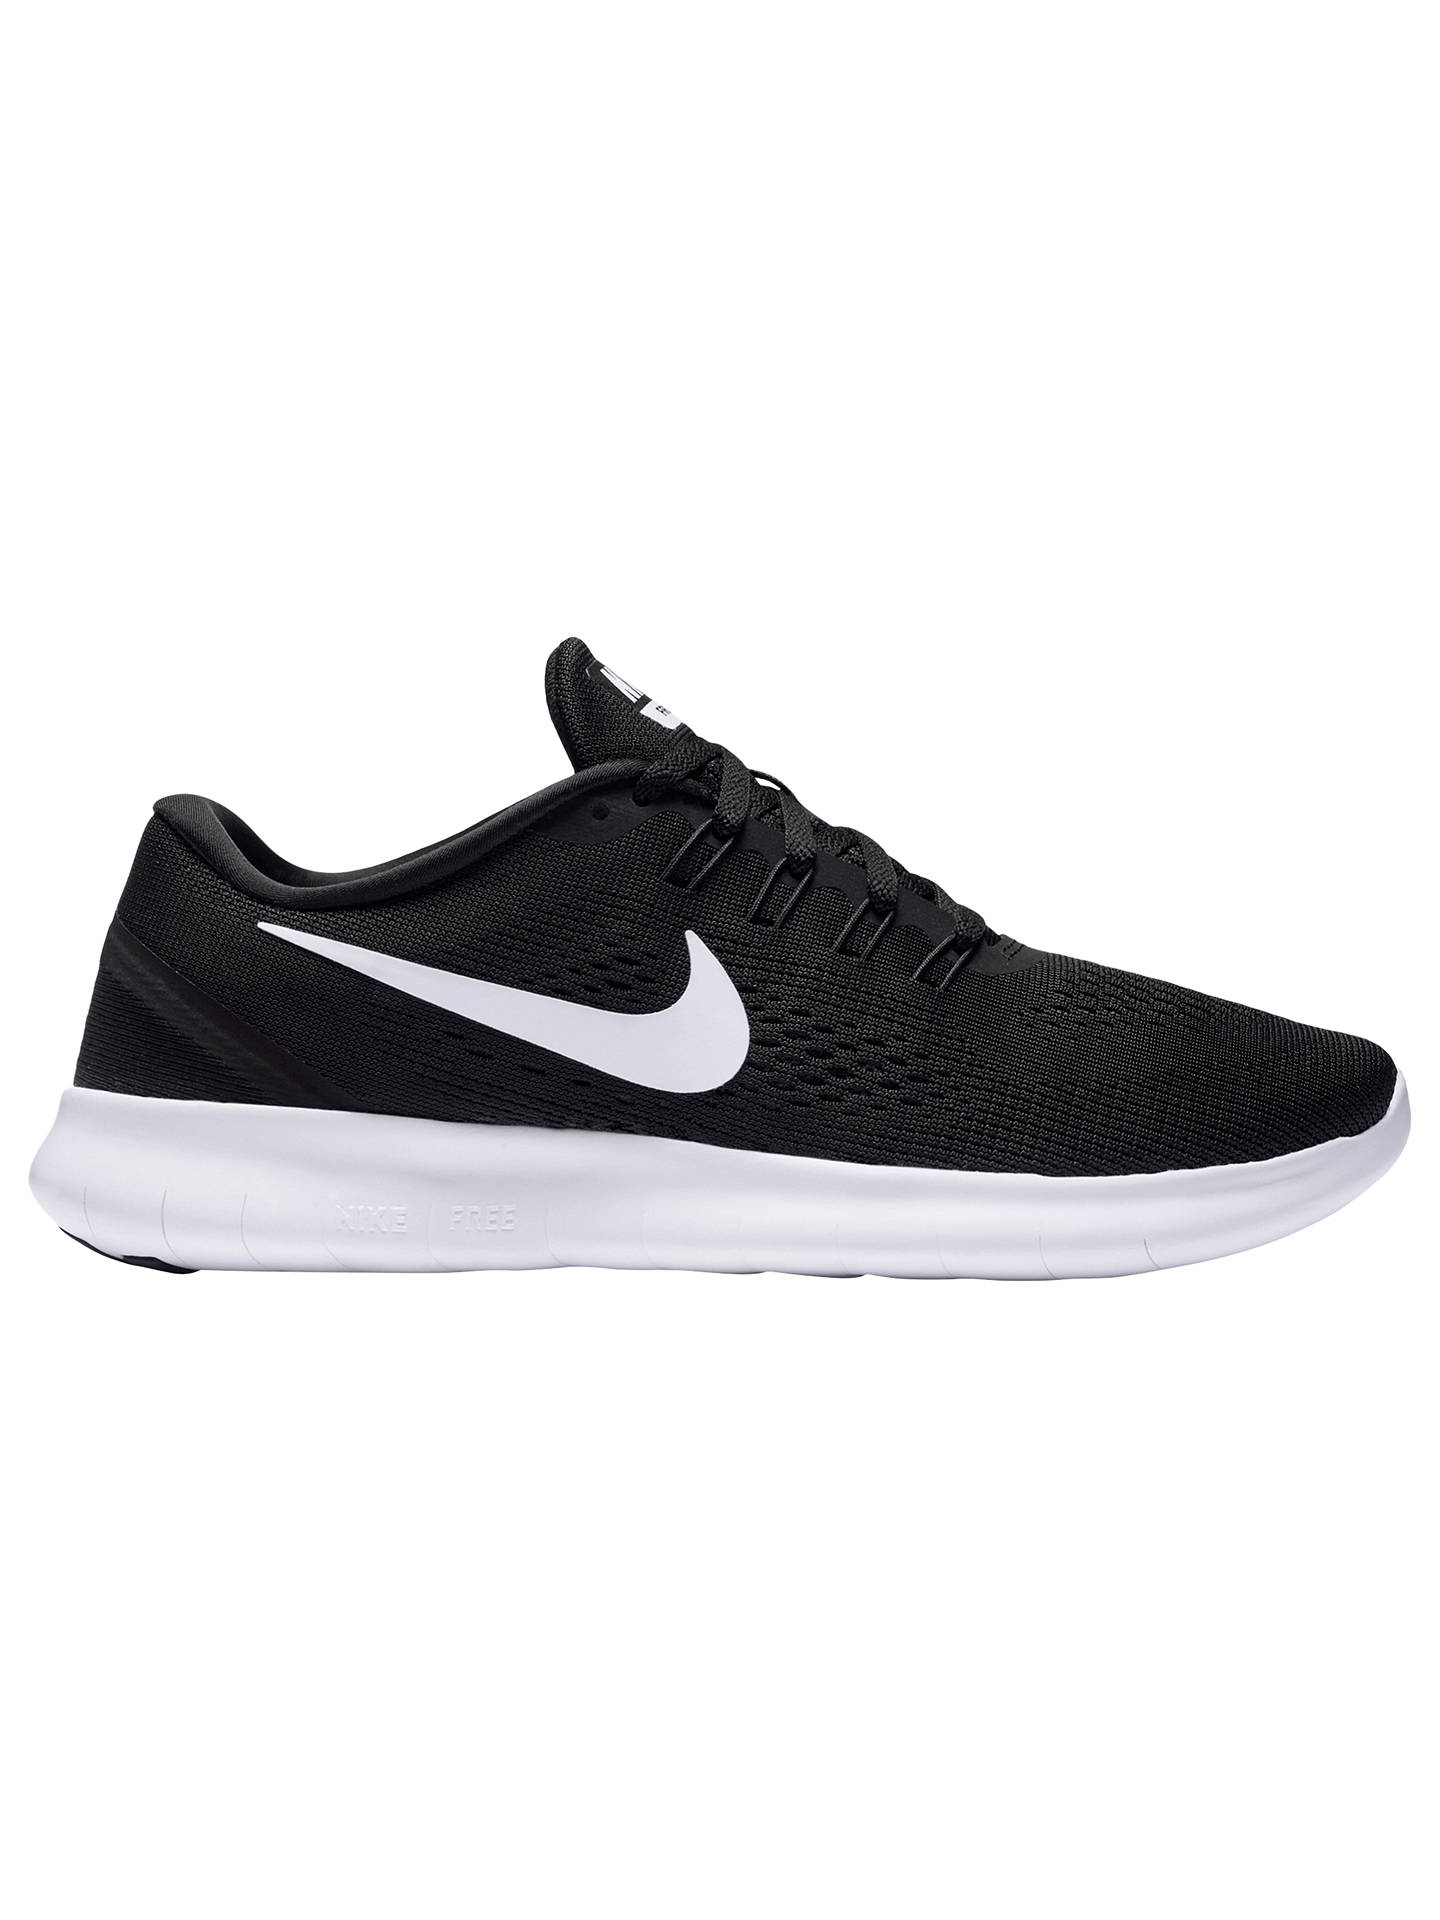 new style a0b95 b82fb Buy Nike Free RN Women s Running Shoes, Black White, 4 Online at johnlewis  ...